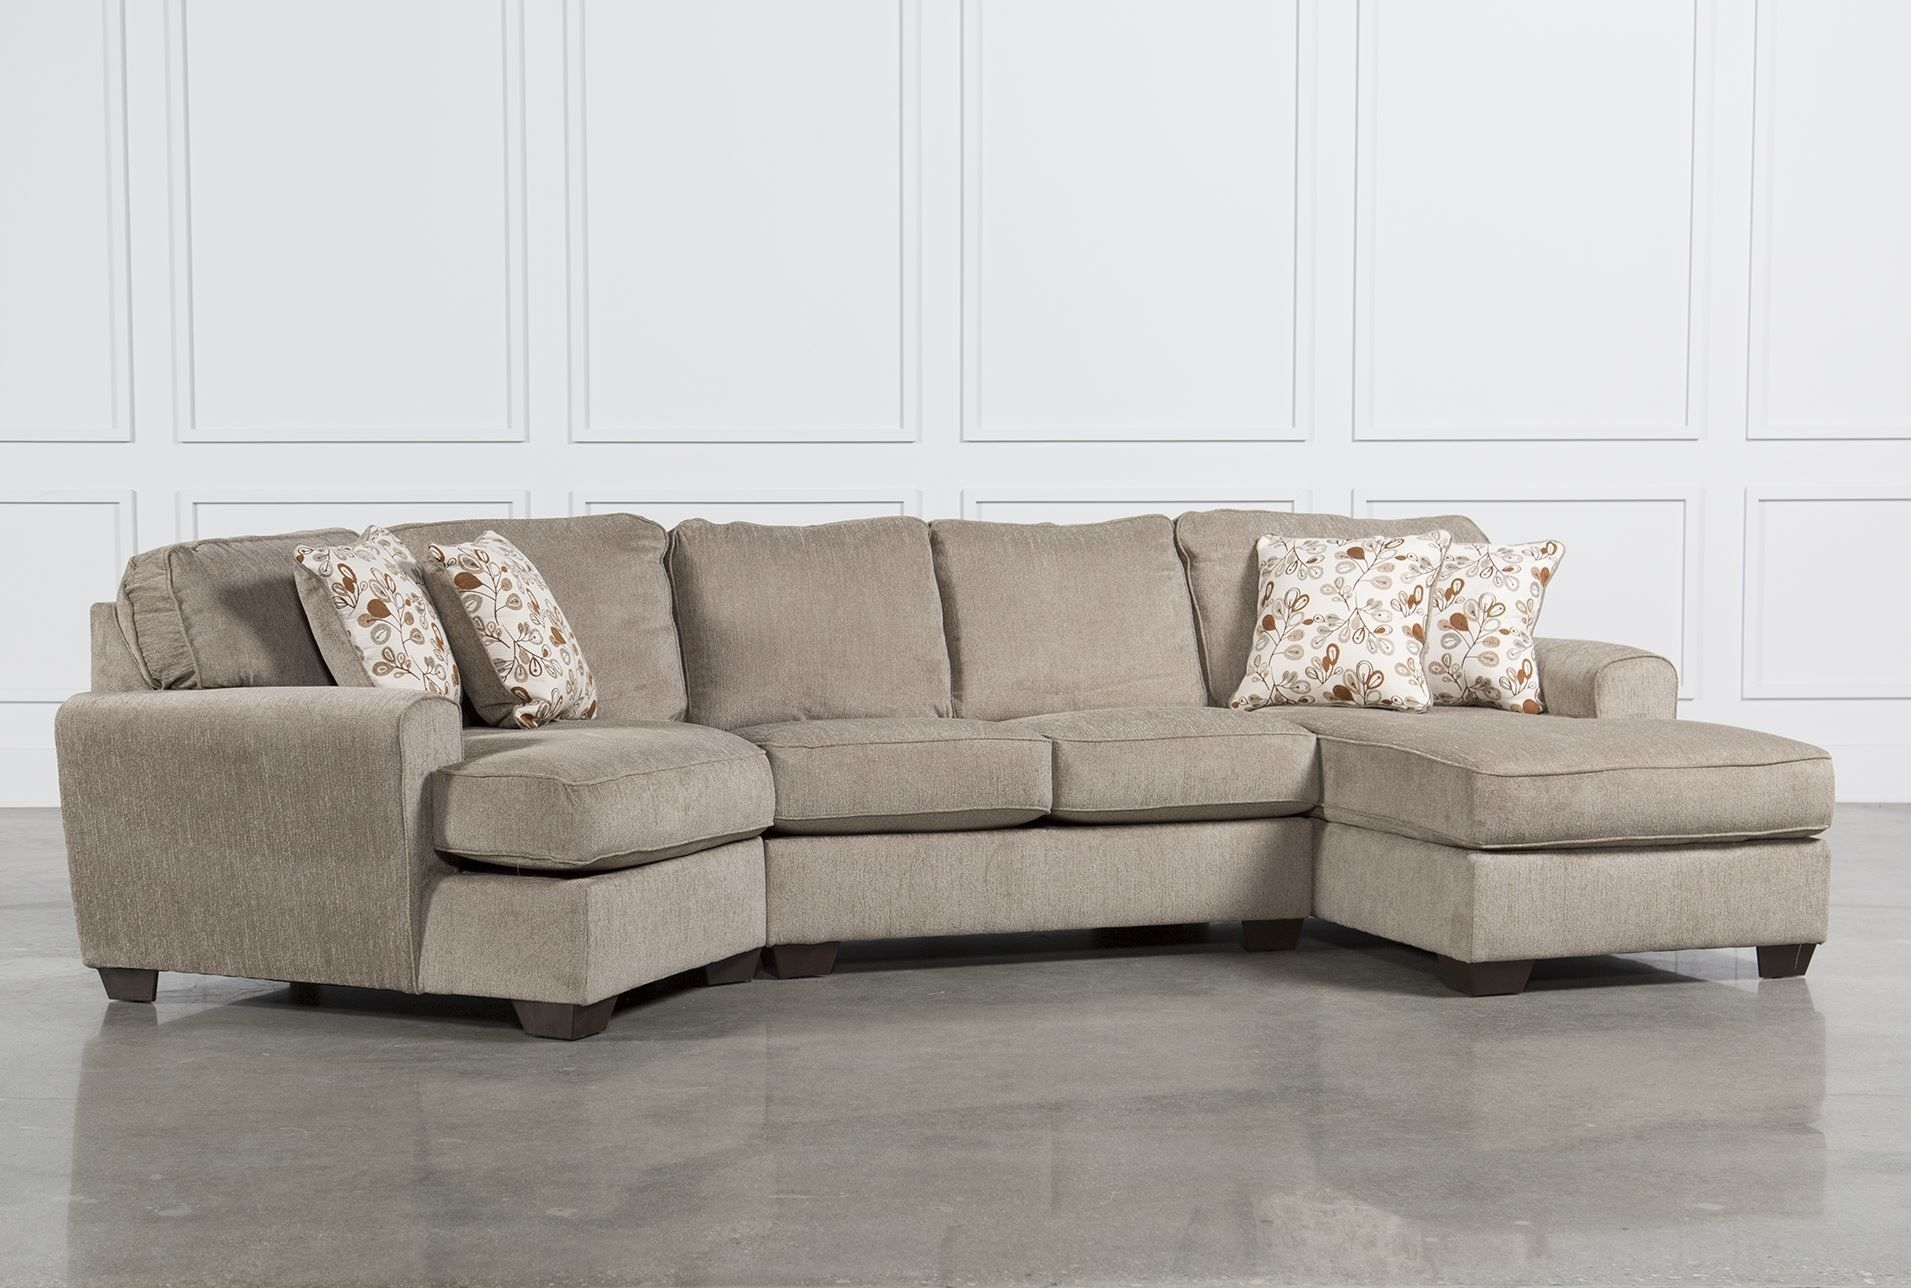 Patola Park 3 Piece Cuddler Sectional W/raf Corner Chaise | Mon Inside Angled Chaise Sofas (View 2 of 10)